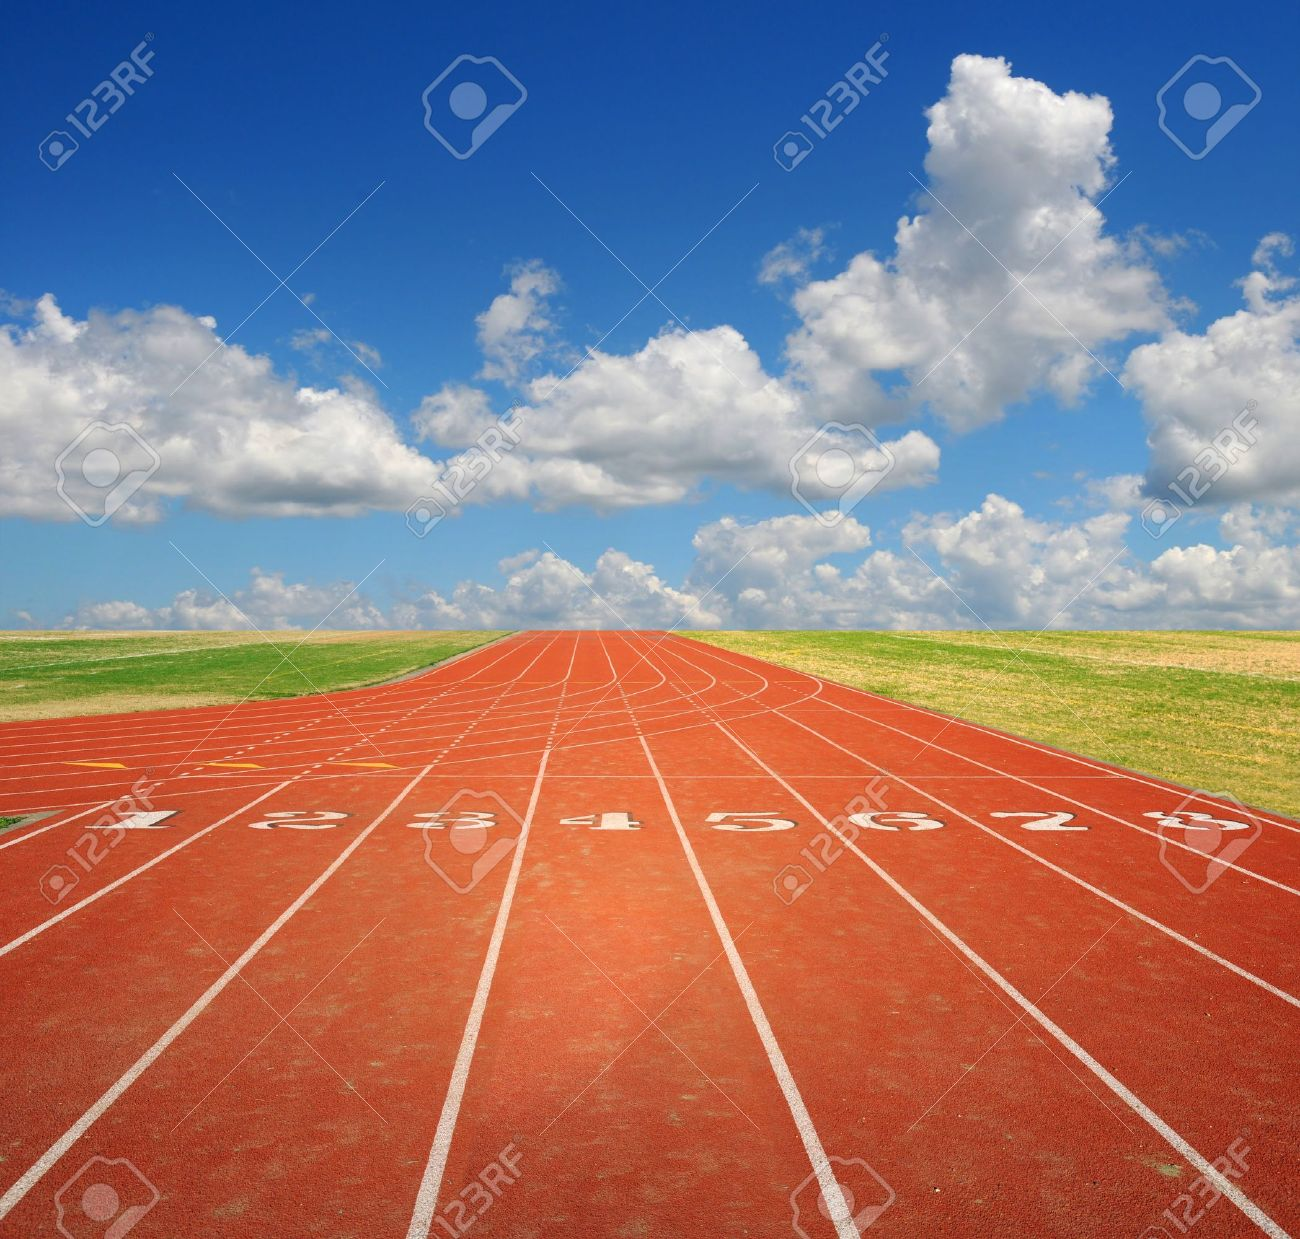 track and field : Running